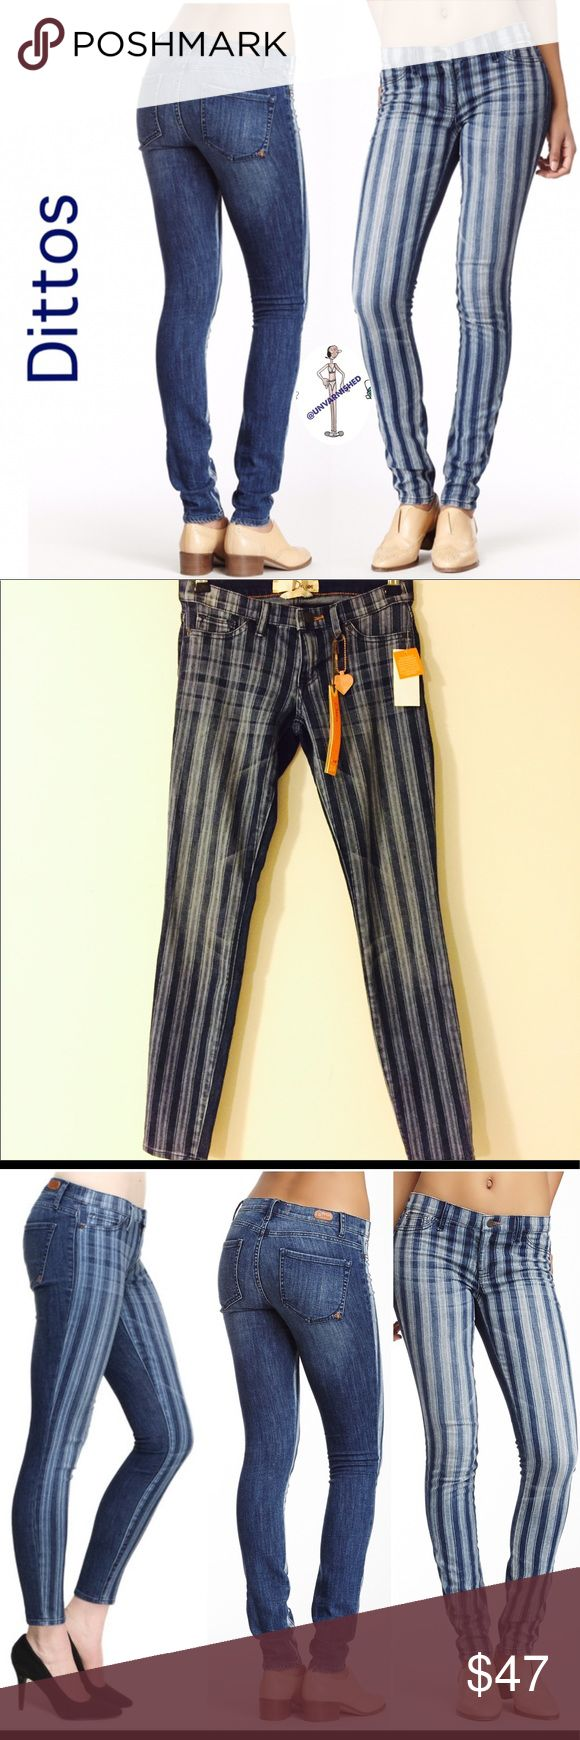 """Dittos Jessica Discharge Jegging Dittos Jessica Striped Low Rise Jegging  - Zip fly with button closure - 2 faux front pockets with coin pocket - 2 back patch pockets - Low rise - Skinny leg - Striped front - Approx. 7.5"""" rise, 32"""" inseam - Imported - 69% cotton, 30% polyester, 1% spandex - Machine wash. Per maker, fits true to size -  NO OFFERS Dittos Jeans Skinny"""